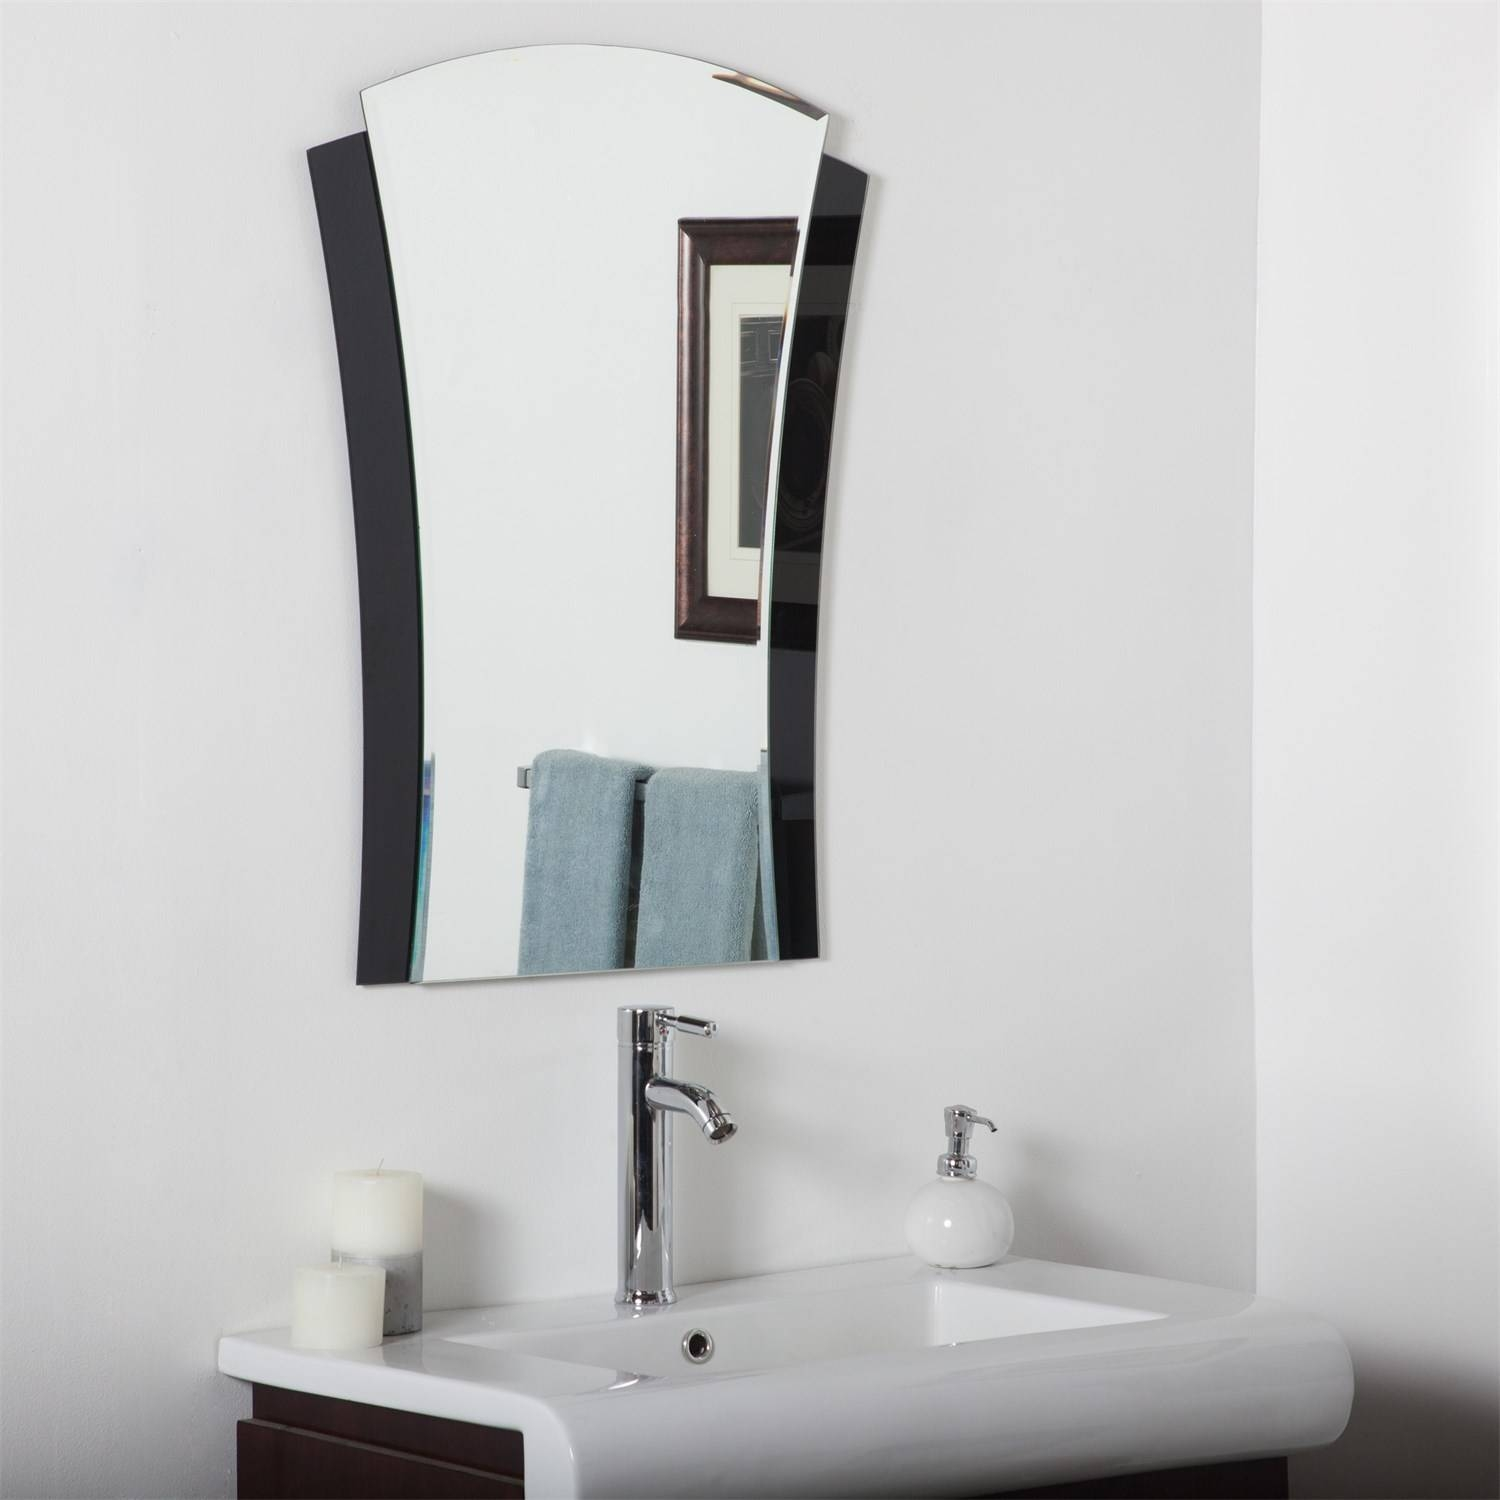 Decor Wonderland Ssm121500 1 Deco Bathroom Mirror – Homeclick Intended For Deco Bathroom Mirrors (View 21 of 25)